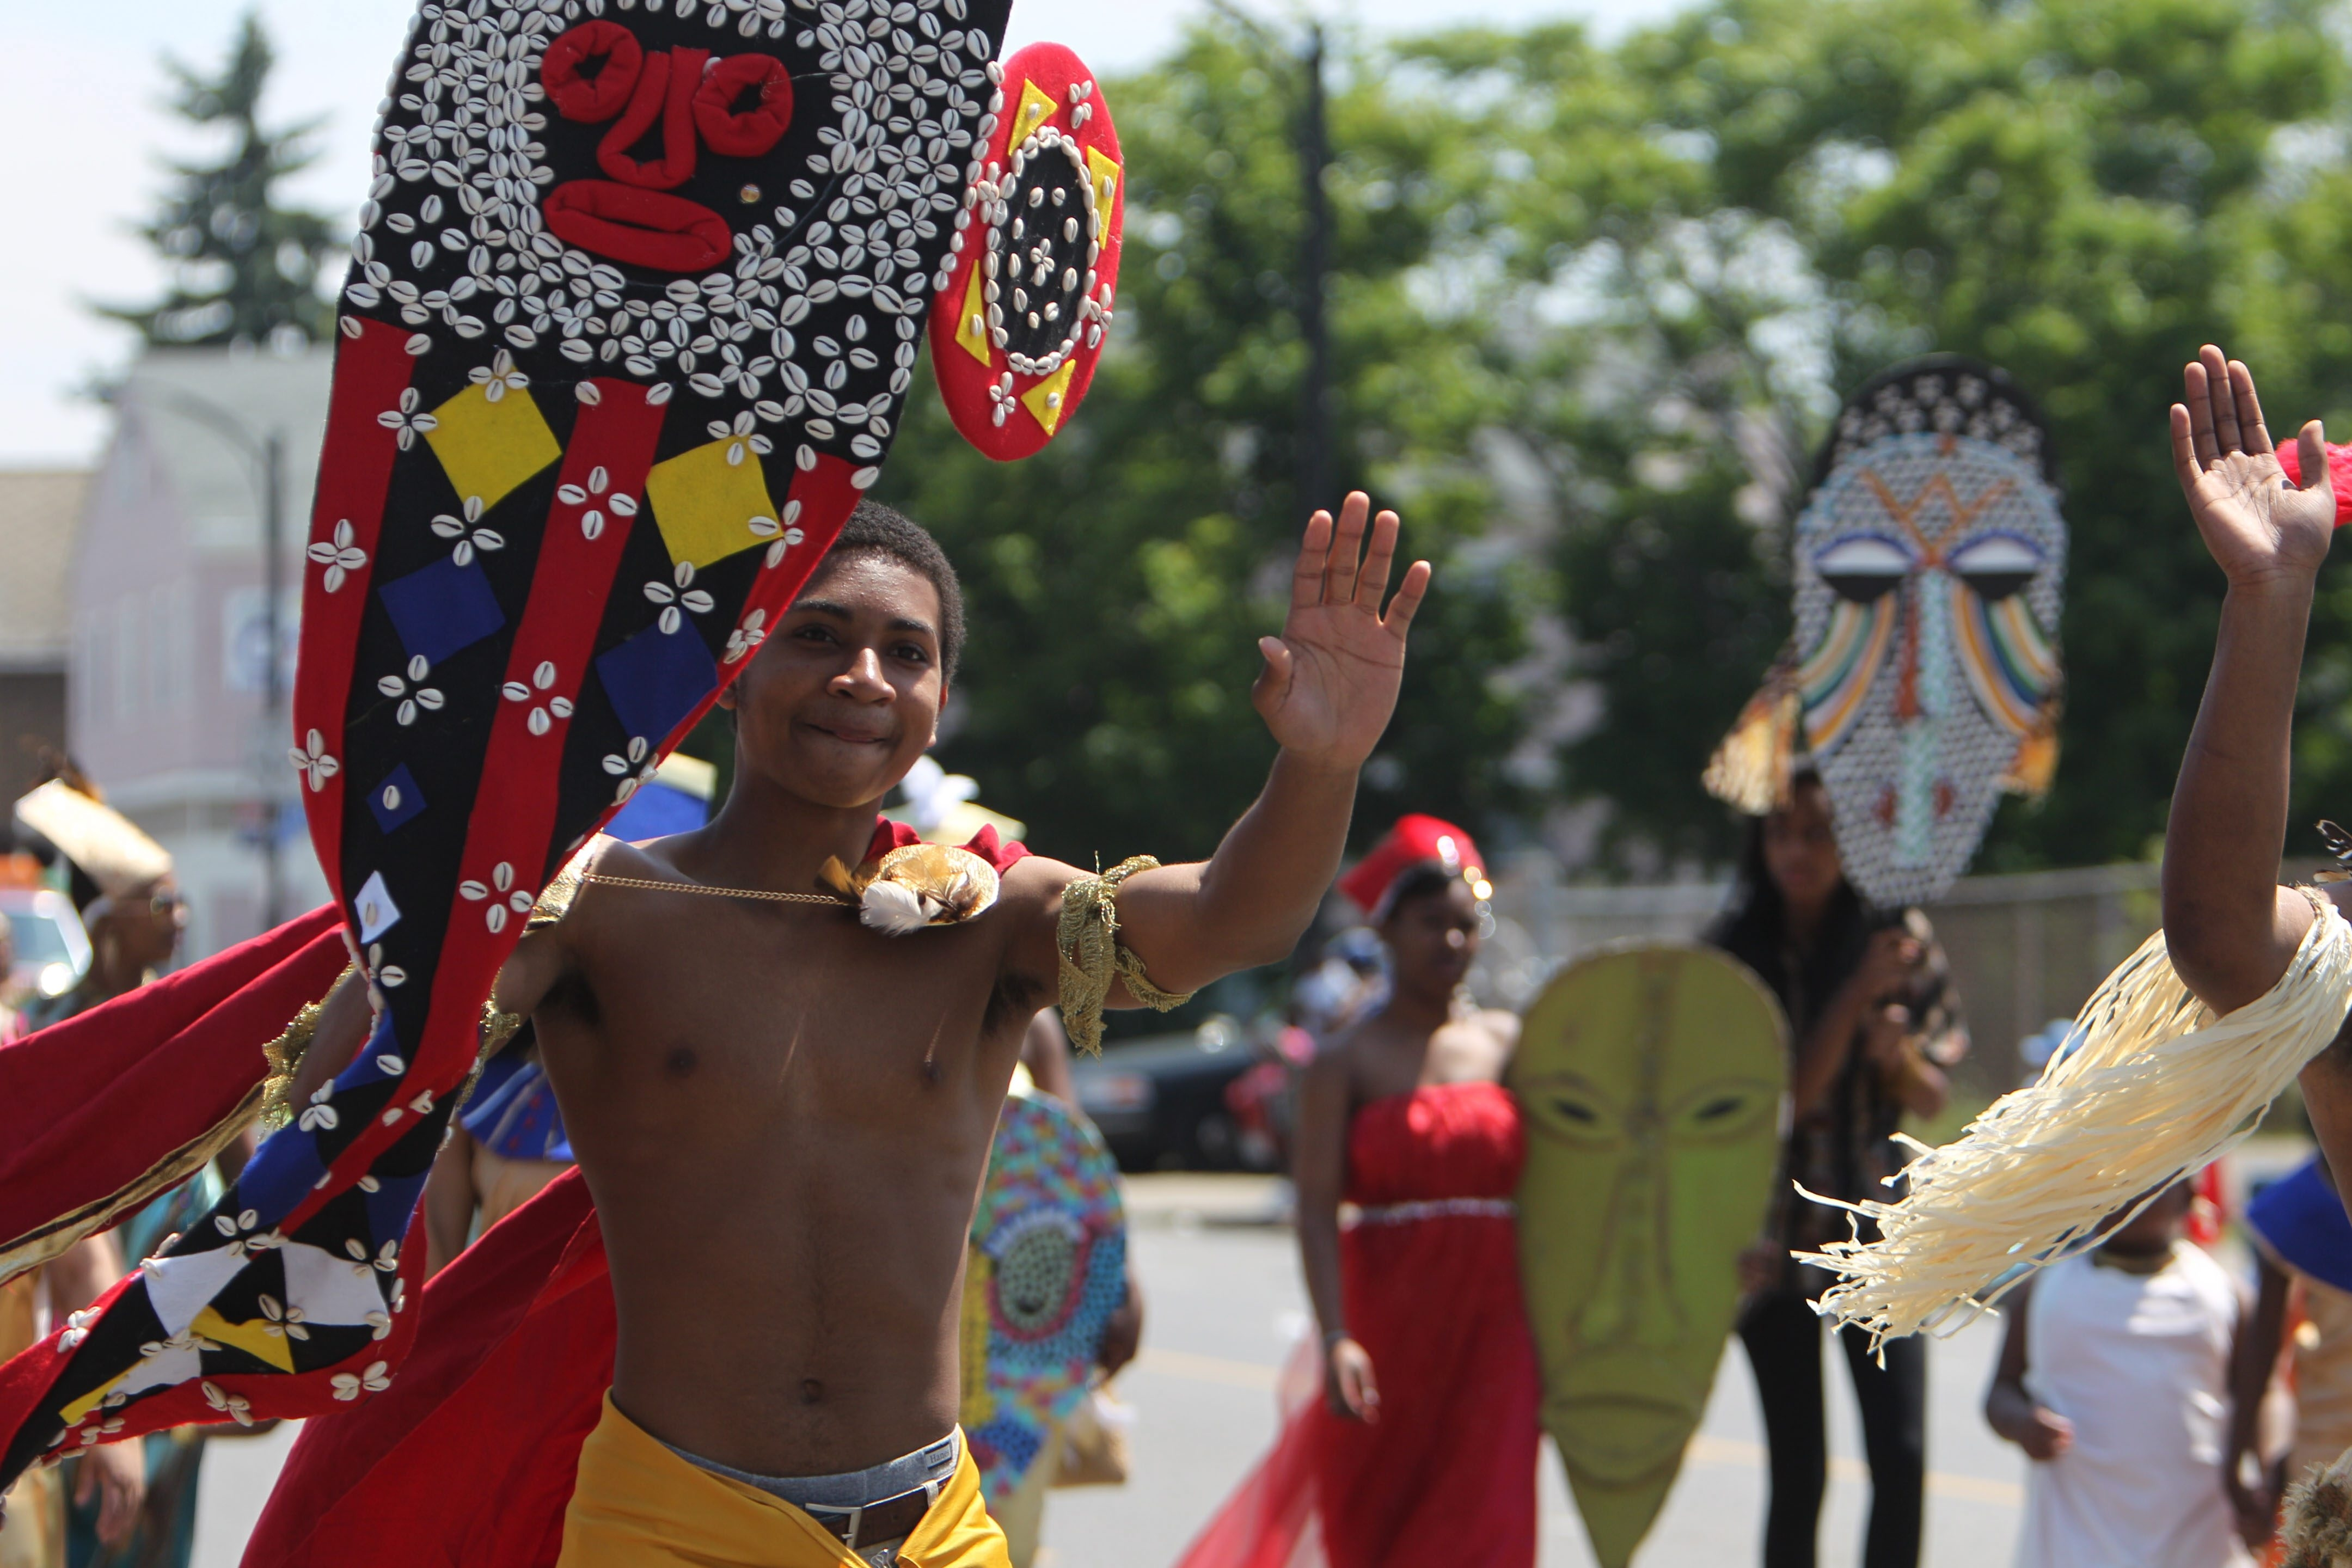 Last year's Juneteenth Festival kicked off with a parade down Genesee Street. The annual event celebrates the  issuance of the Emancipation Proclamation, which freed African-Americans from slavery.